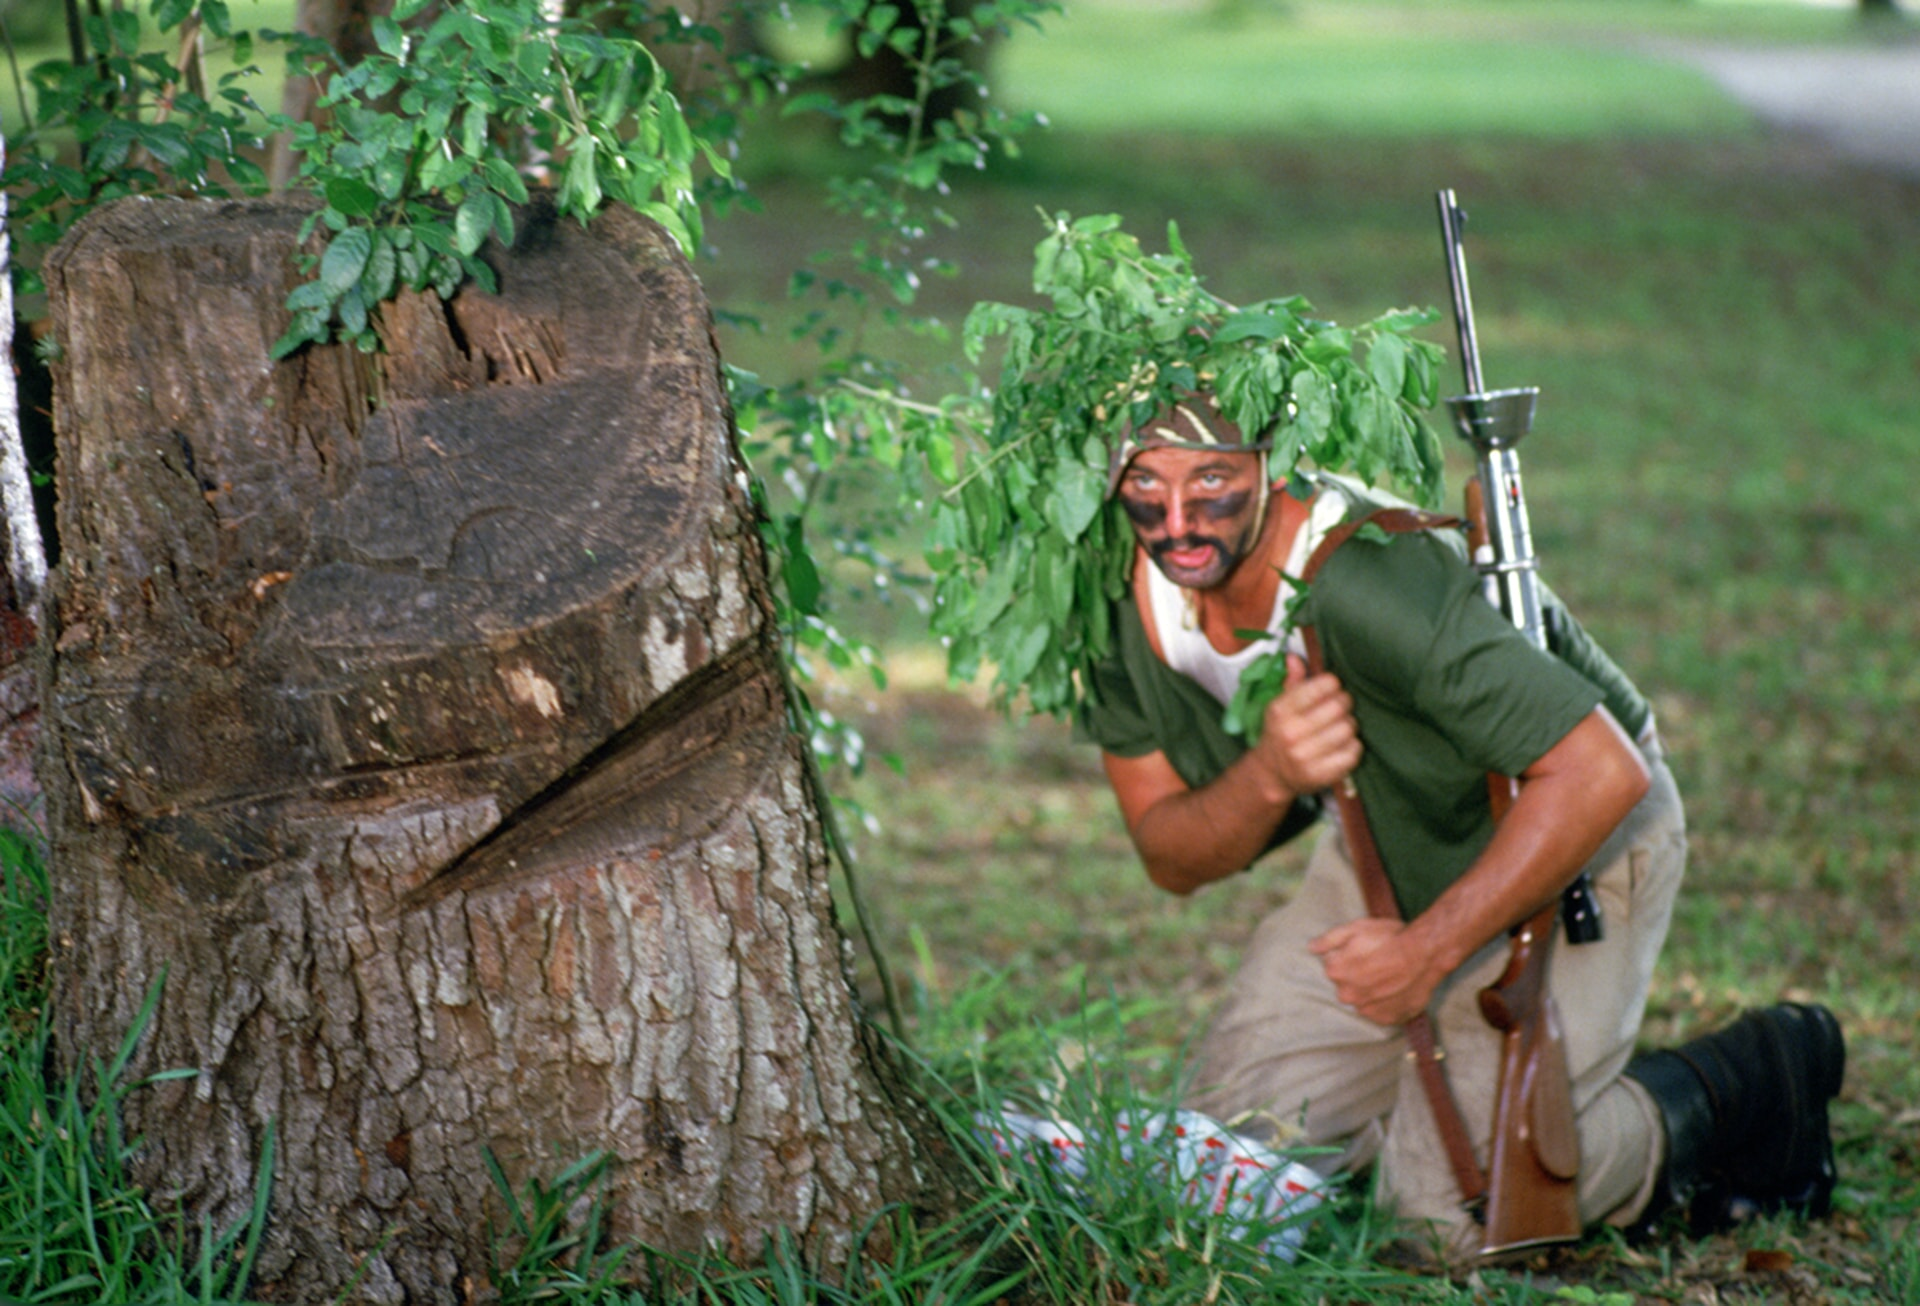 bill murray as carl spackler goes hunting for a devious gopher in caddyshack